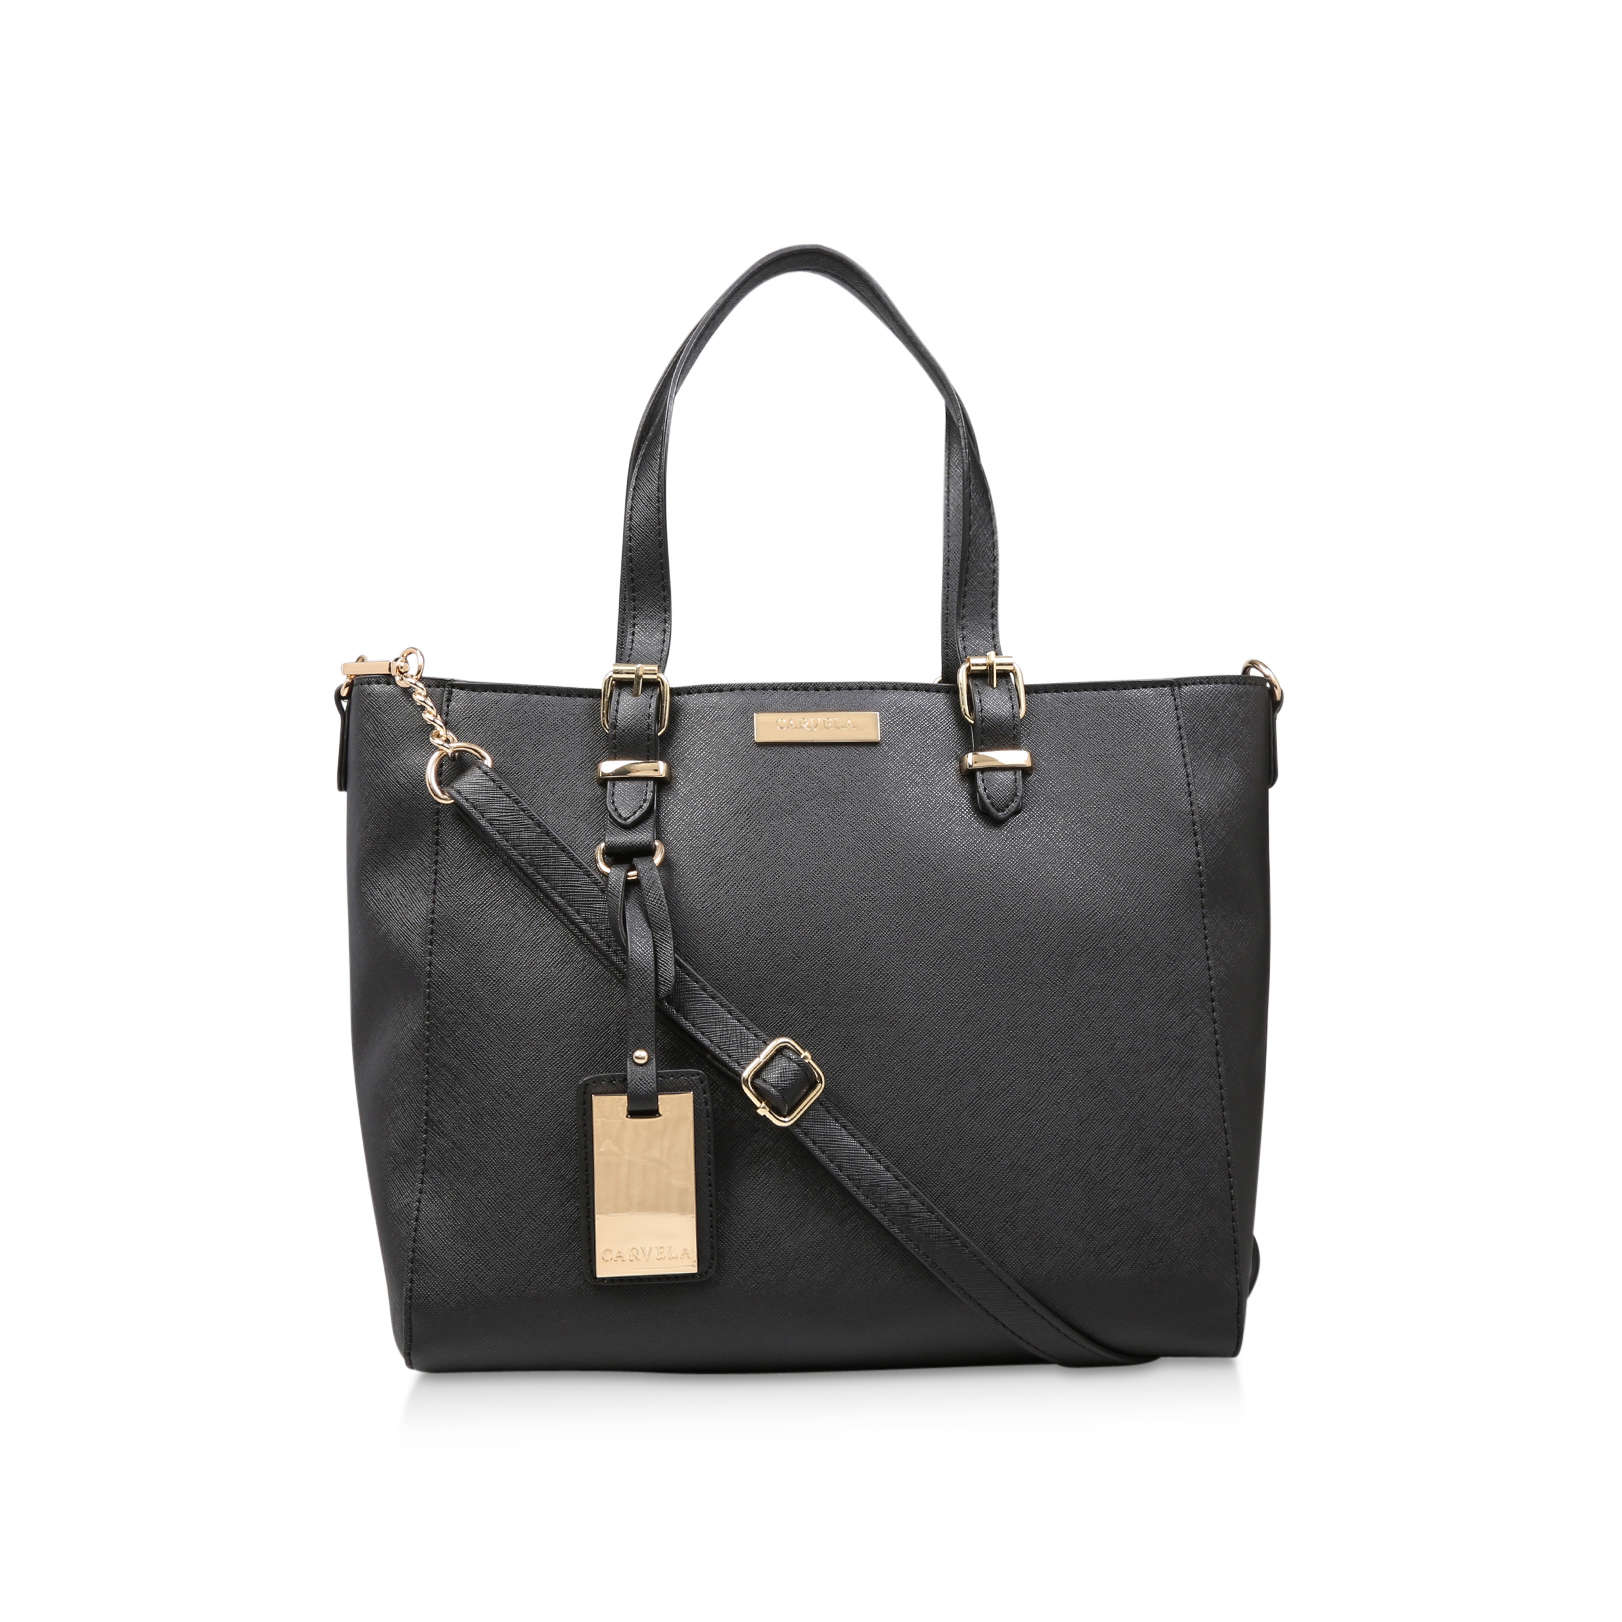 DINA2 WINGED TOTE